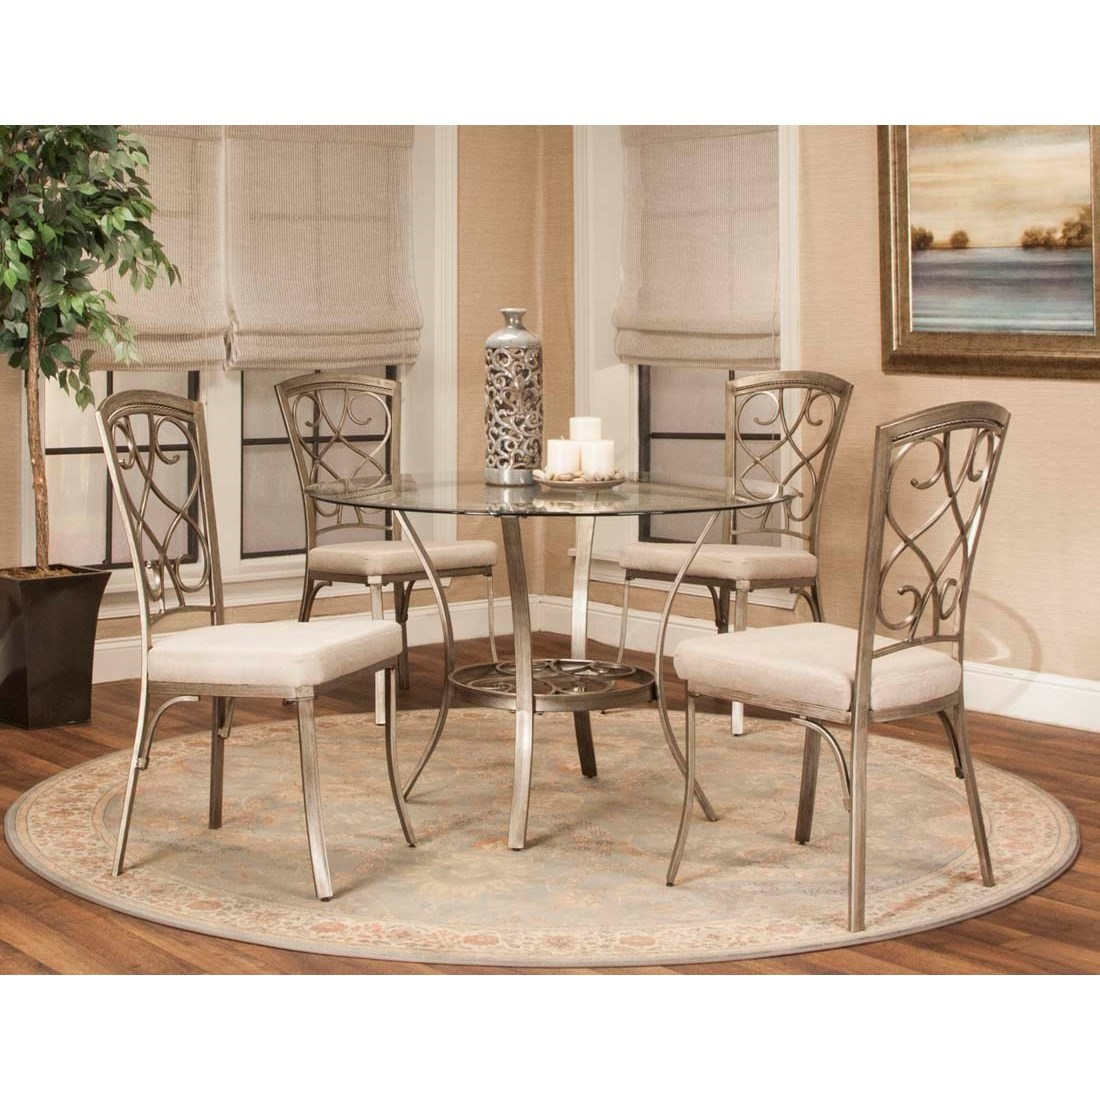 Asti 5-Piece Table and Chair Set by Cramco, Inc at Lapeer Furniture & Mattress Center